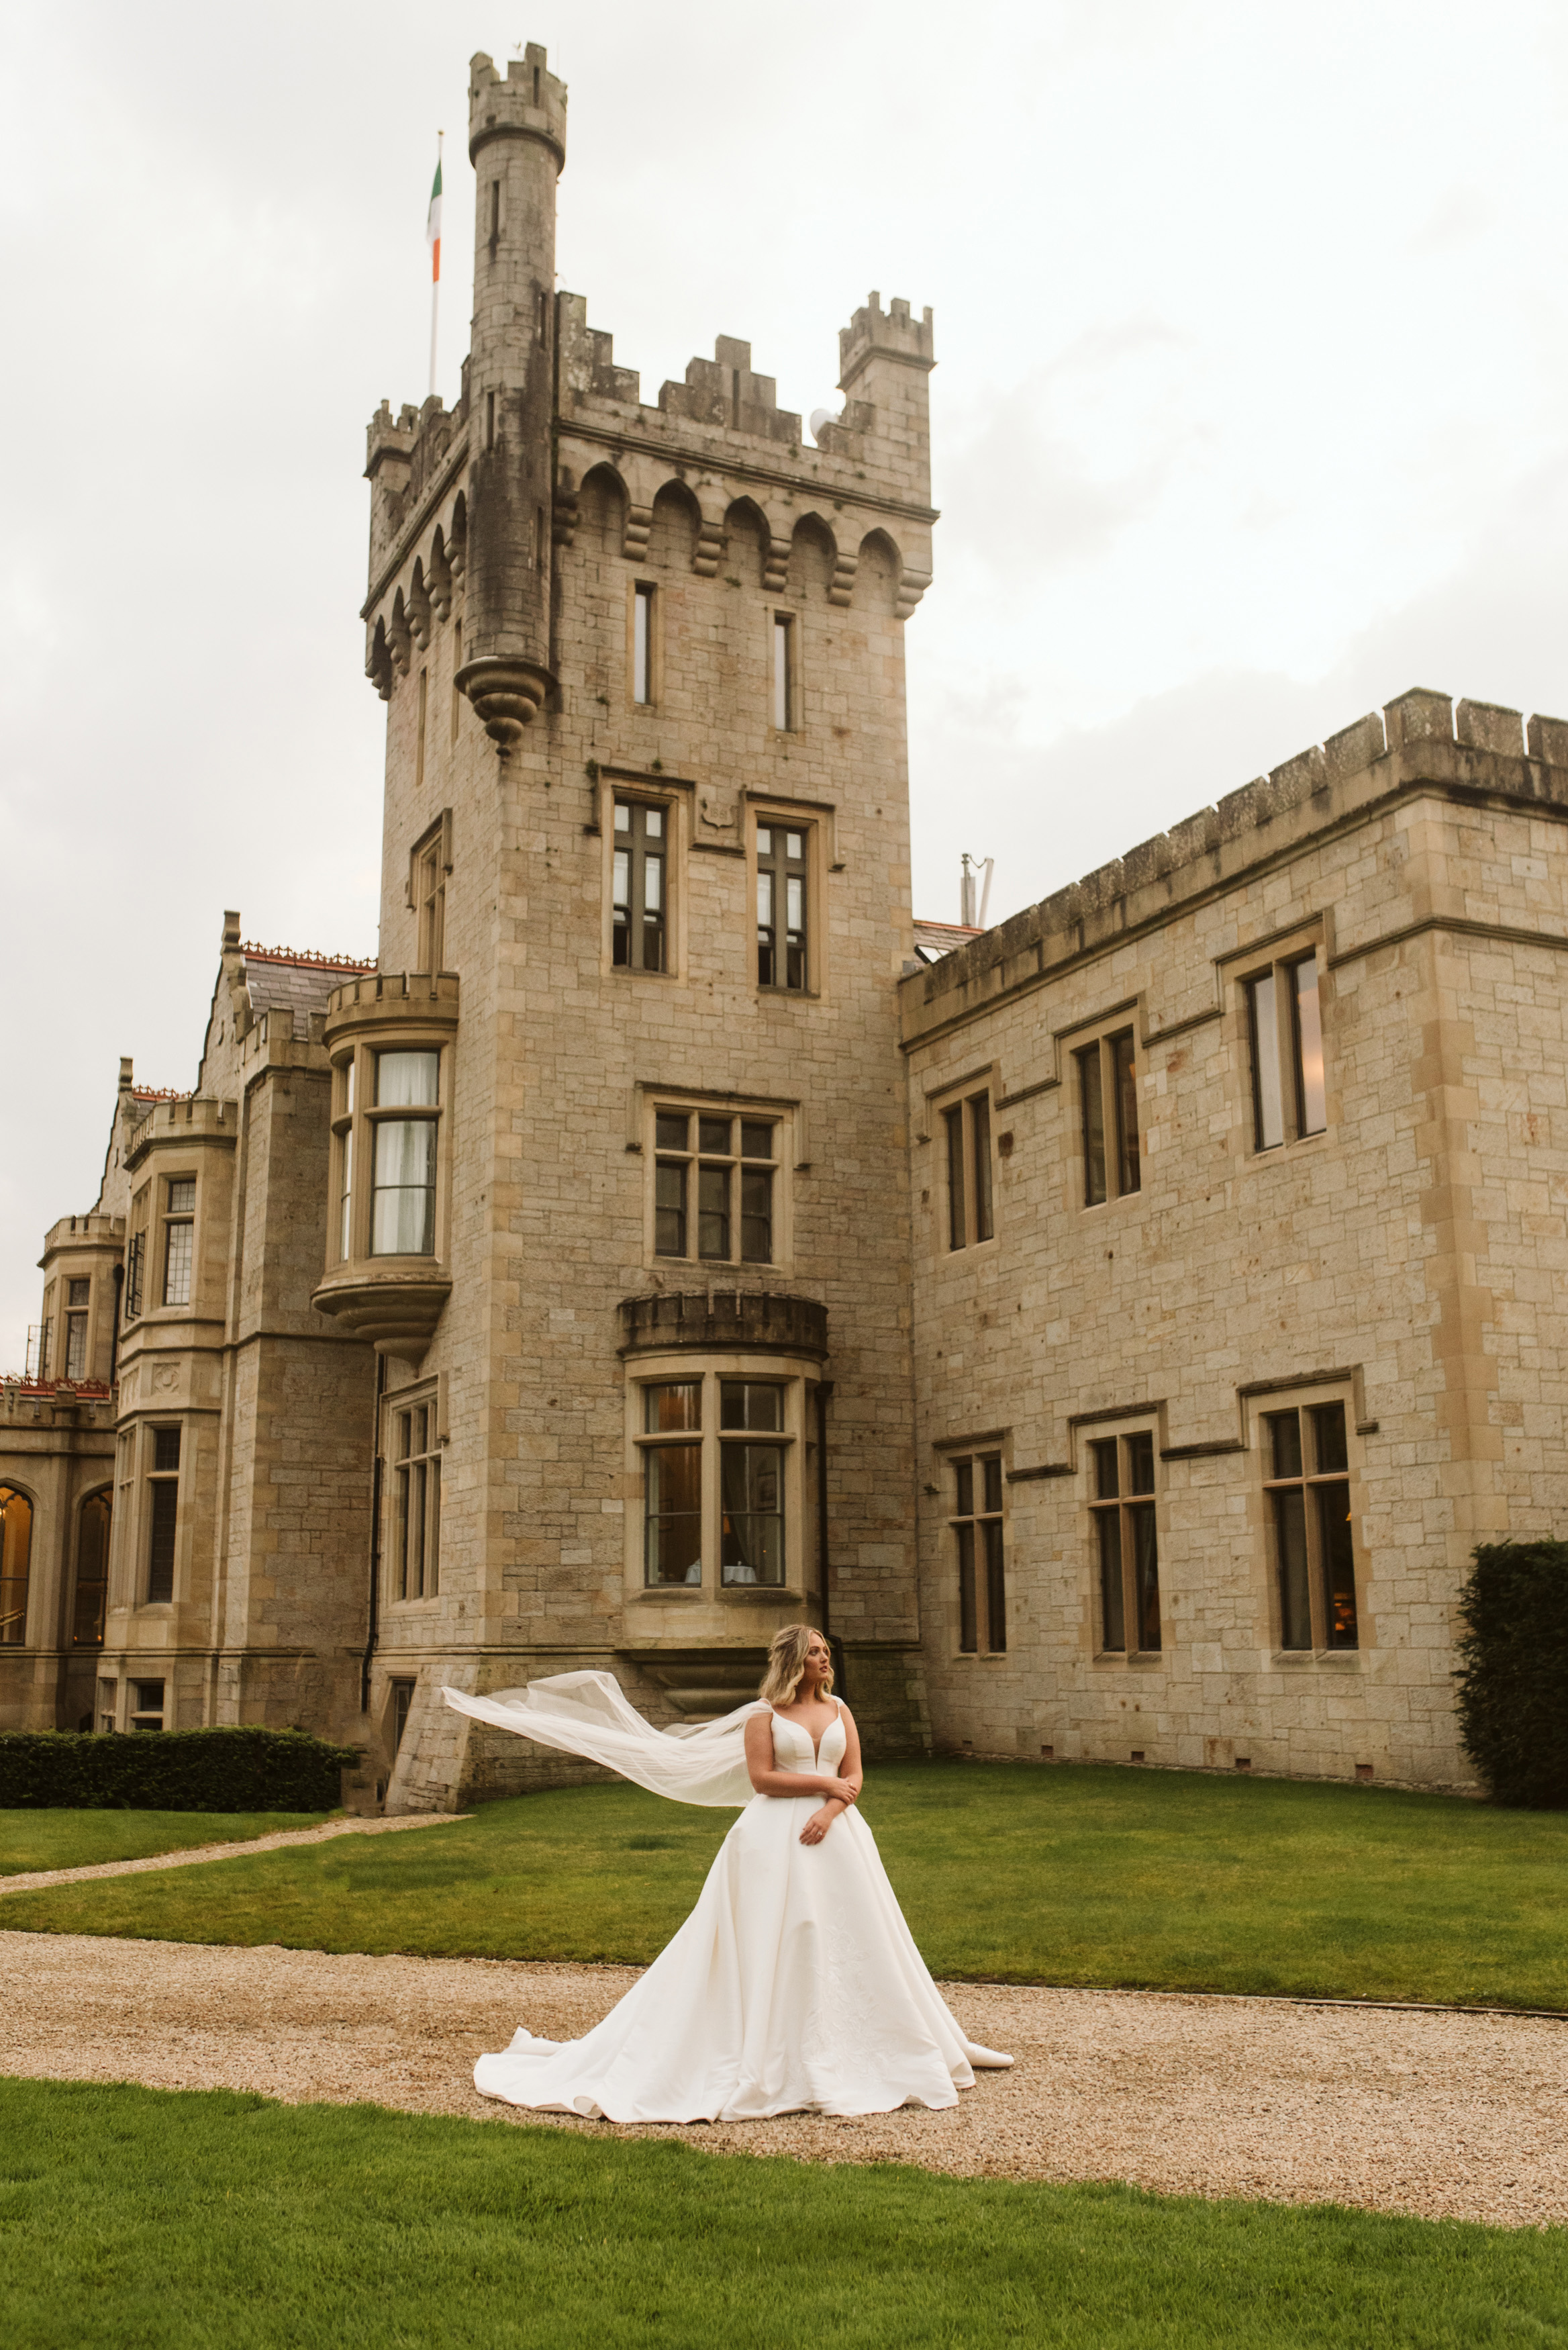 Bride in a mikado ballgown wedding dress with a tulle cape blowing in the wind at Lough Eske Castle in Ireland